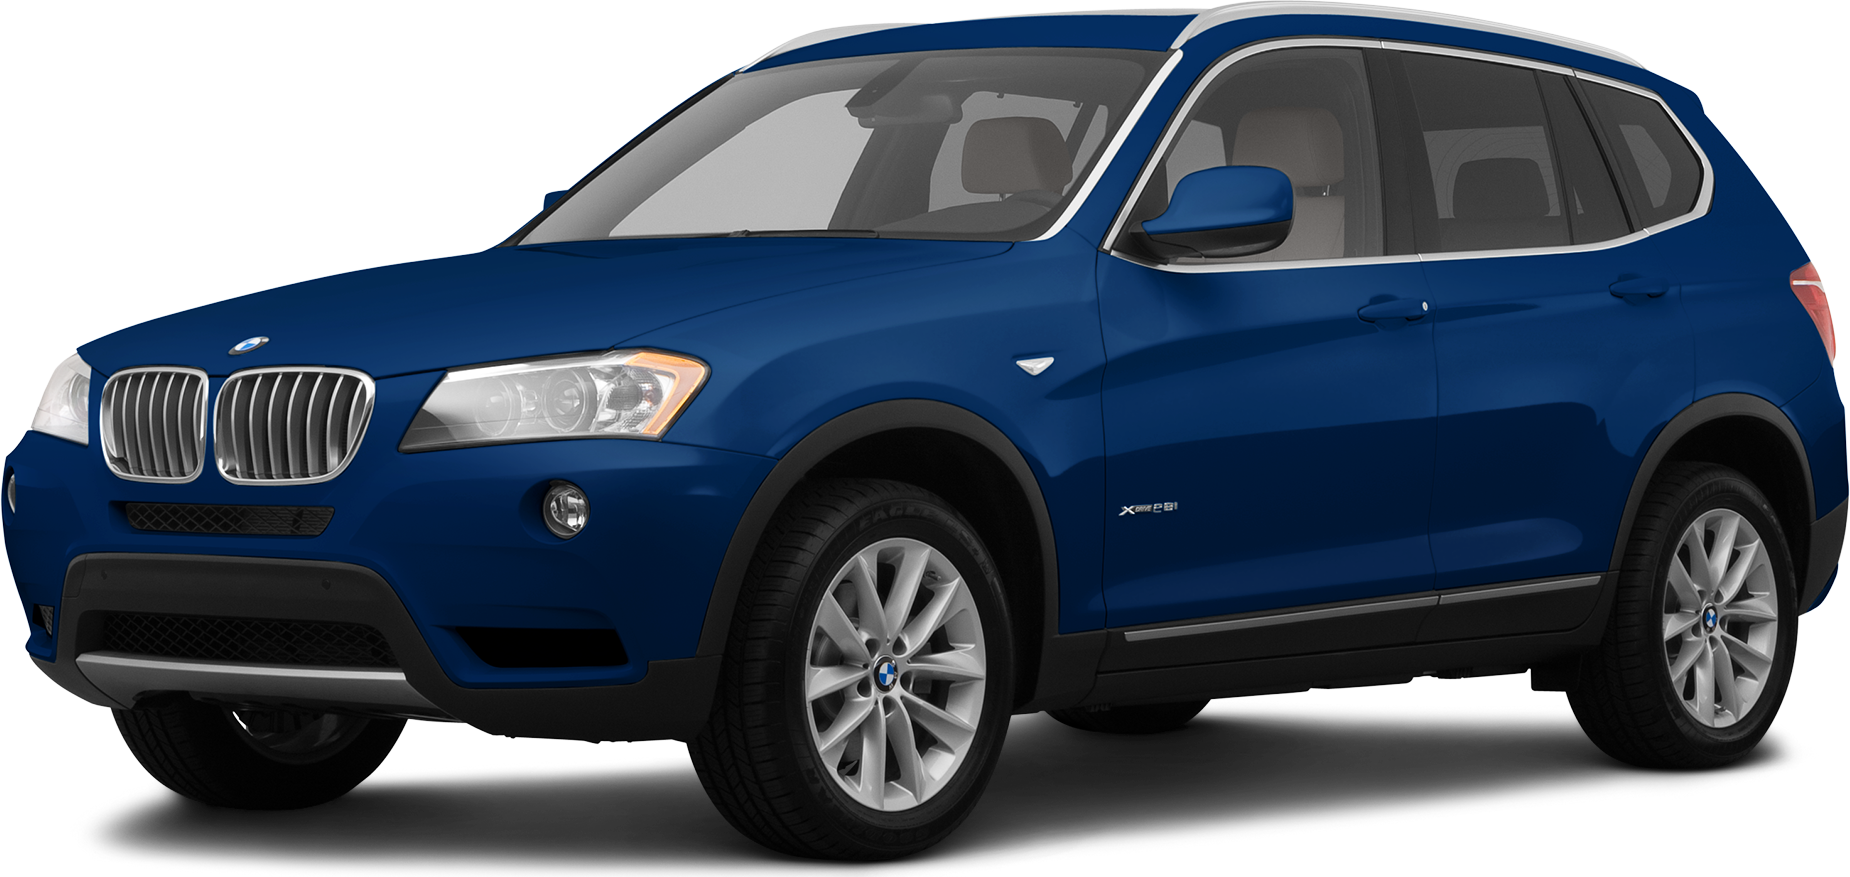 2012 Bmw X3 Values Cars For Sale Kelley Blue Book